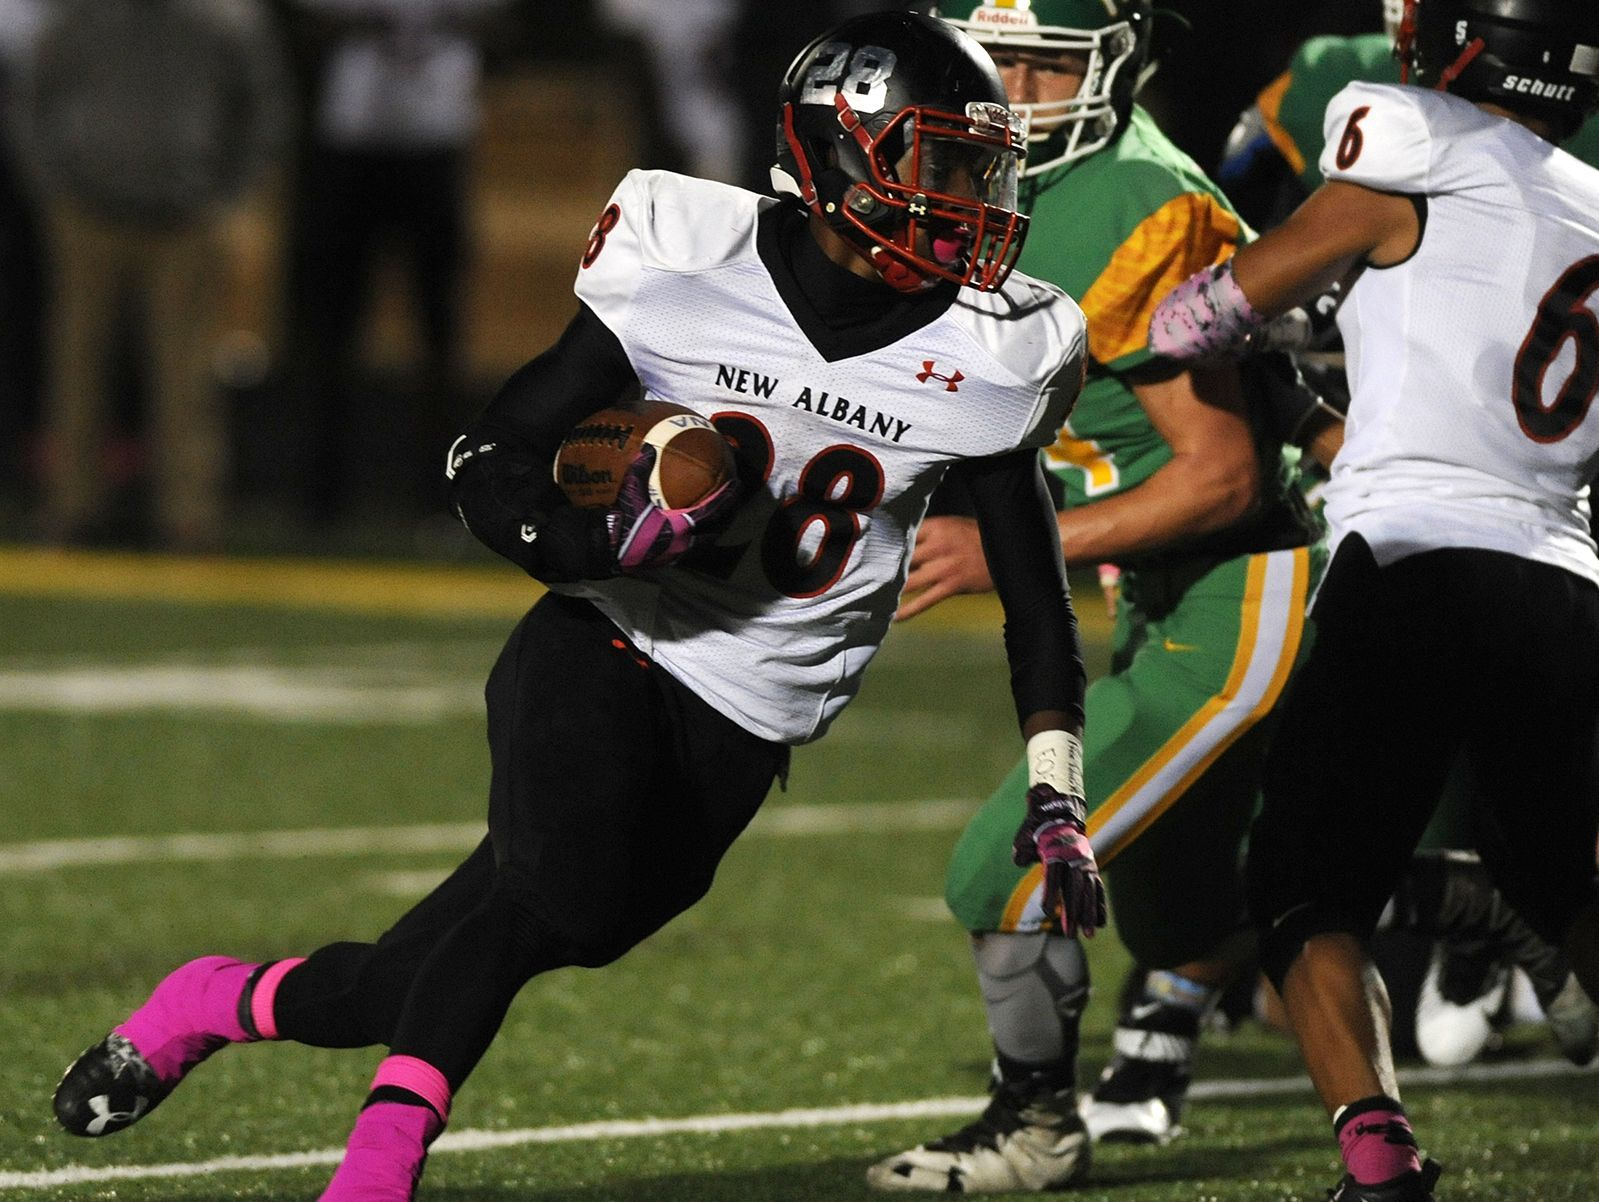 New Albany's Darquan Richardson (28) gains yardage on a run against Floyd Central on Friday at Floyd Central High School. Oct. 14, 2016